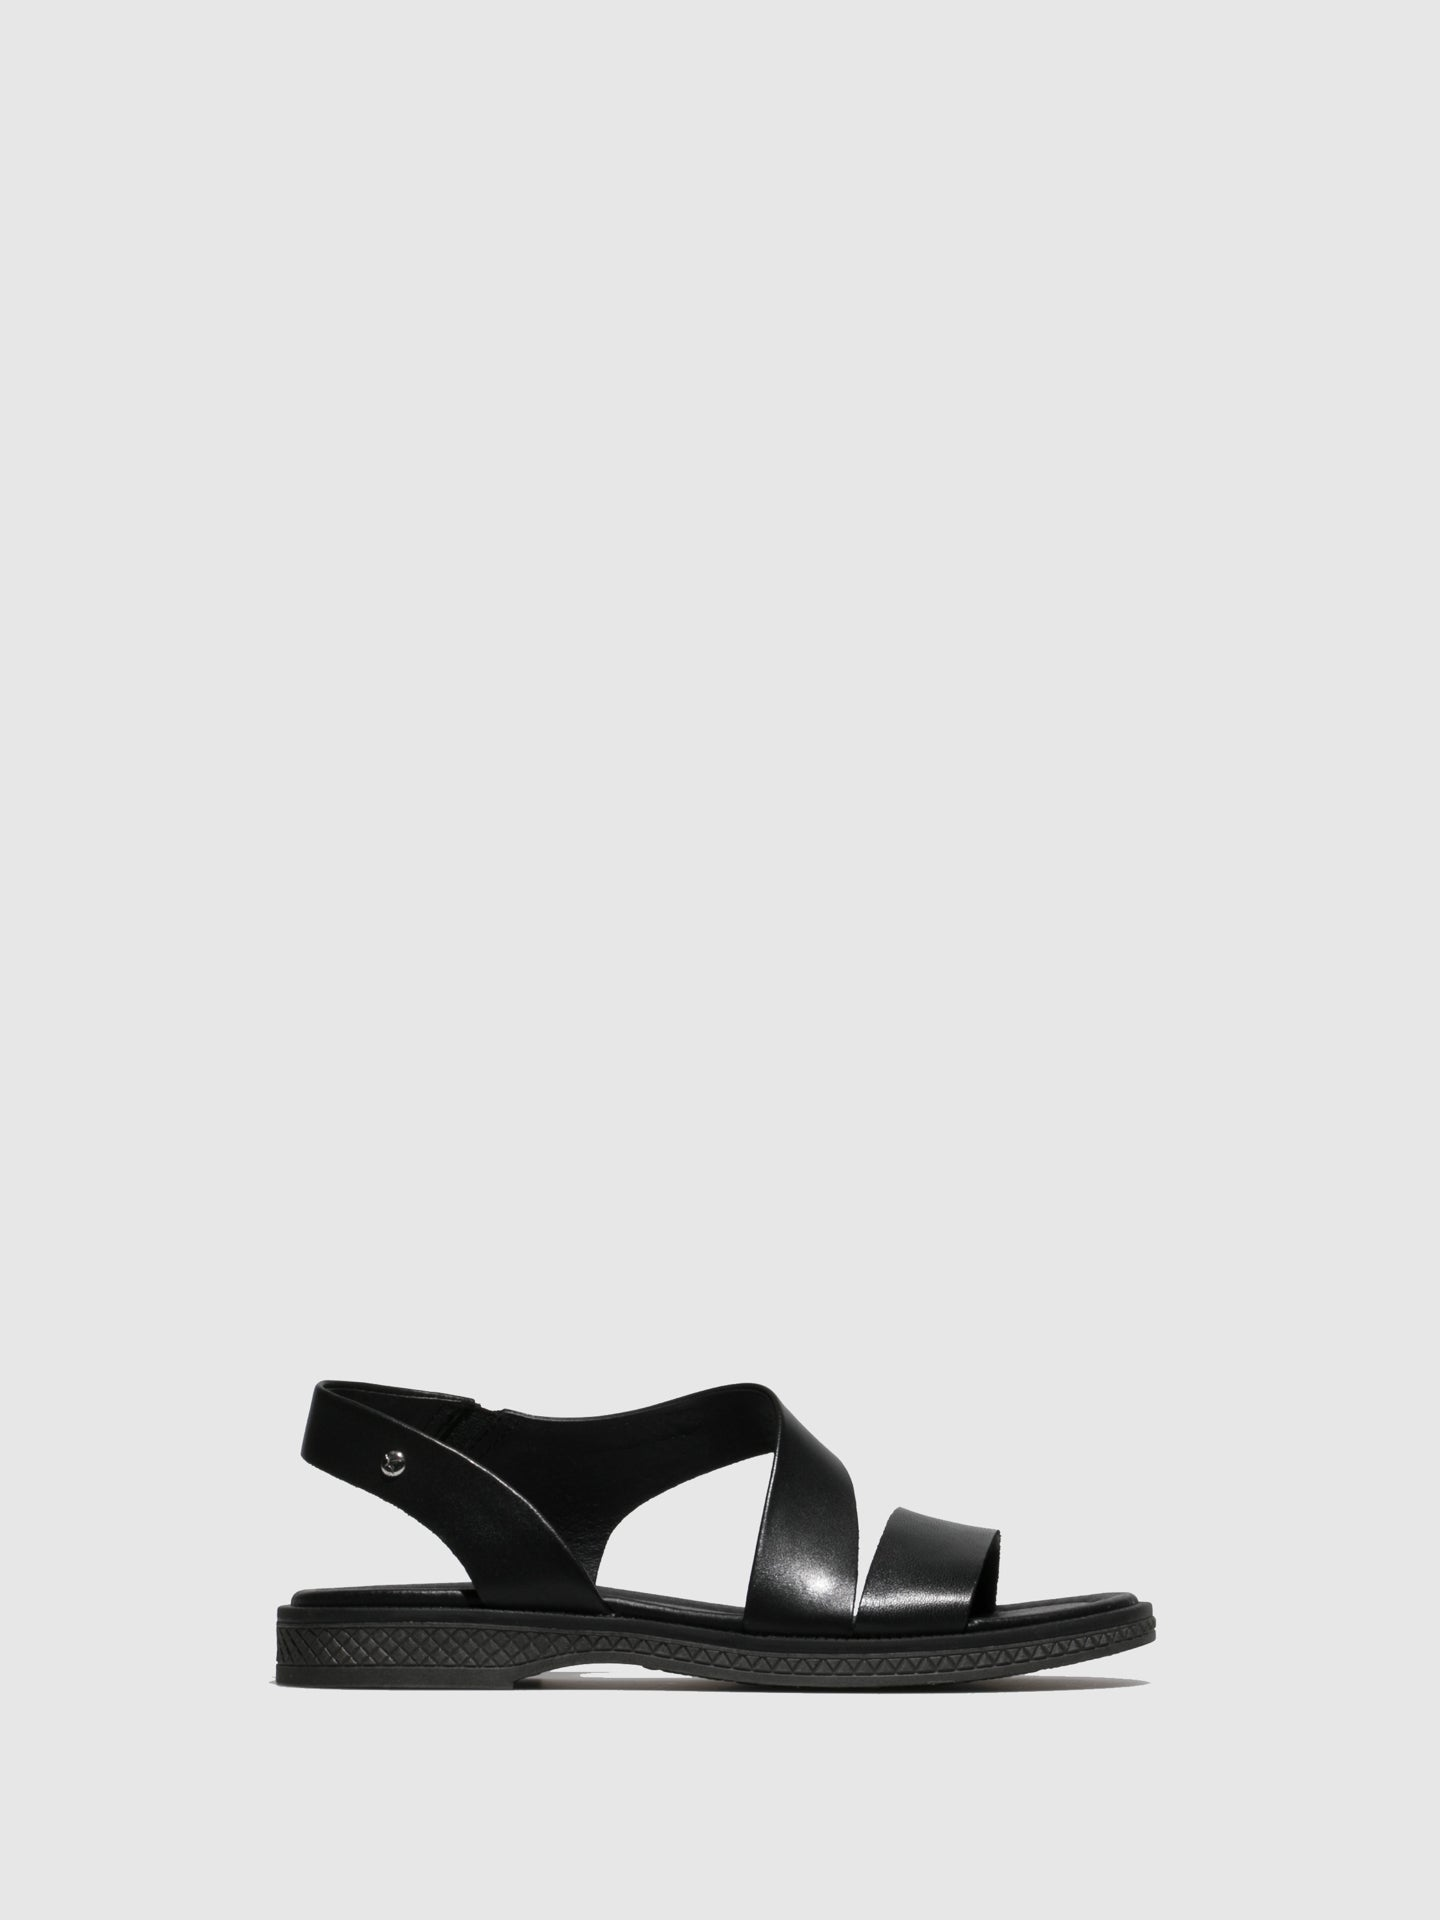 Pikolinos Black Sling-Back Sandals